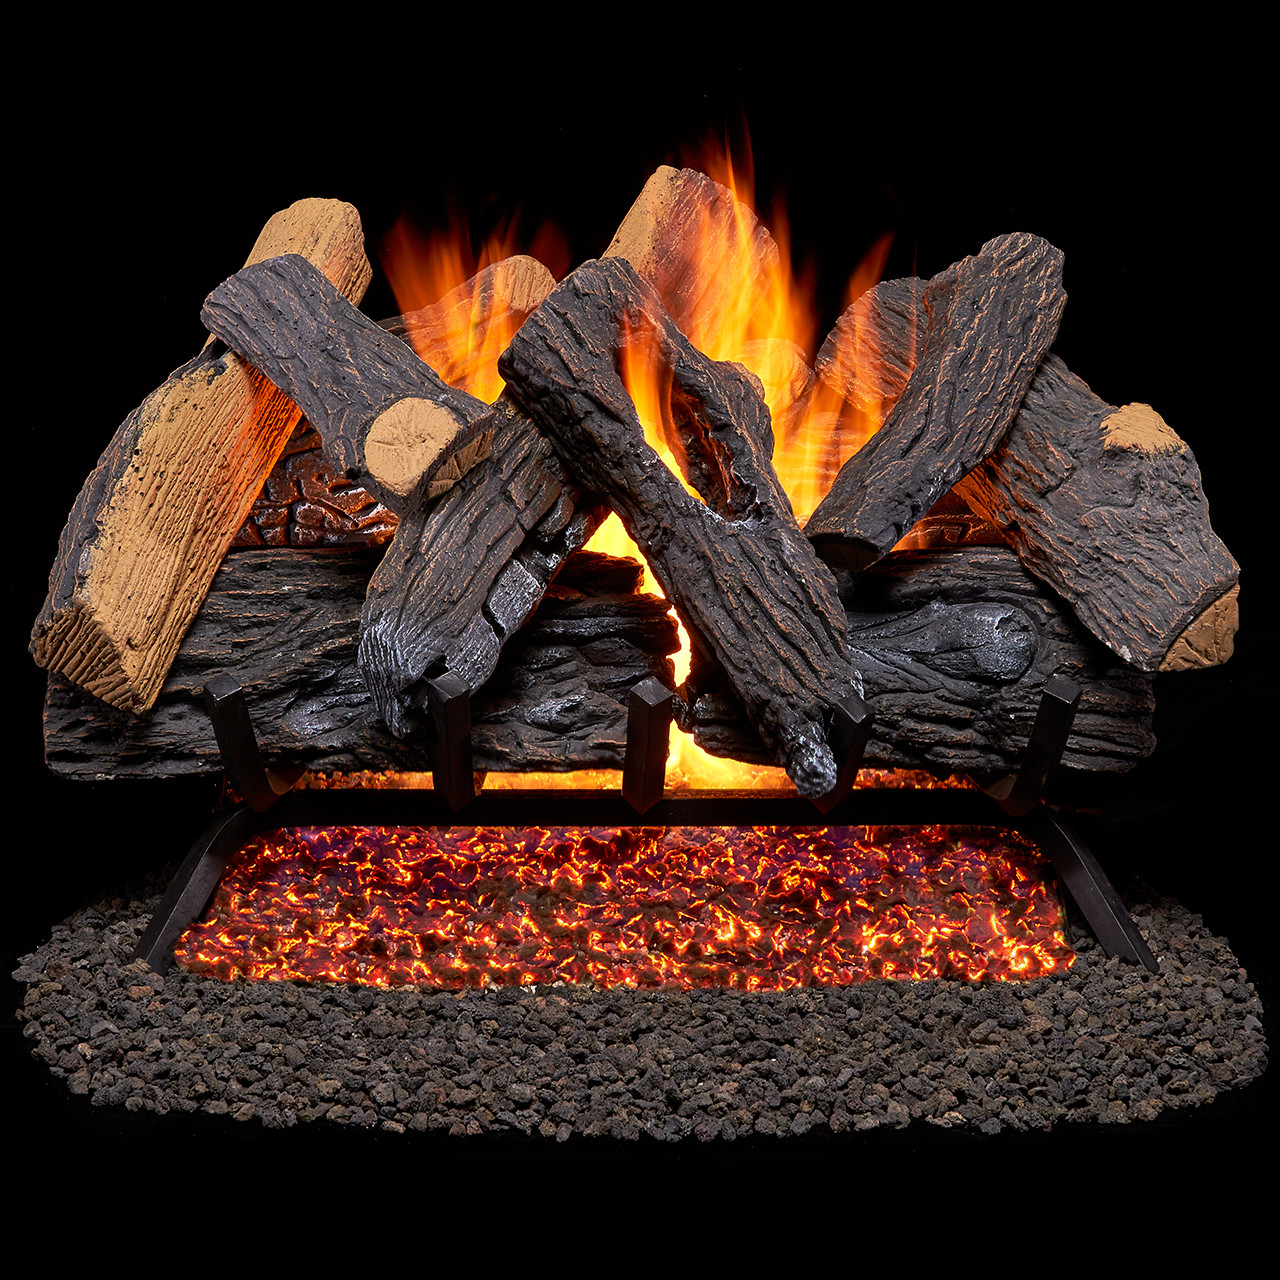 Ceramic Logs For Gas Fireplace Gas Log Gas Log Sets Fireplace Log Sets Factory Buys Direct